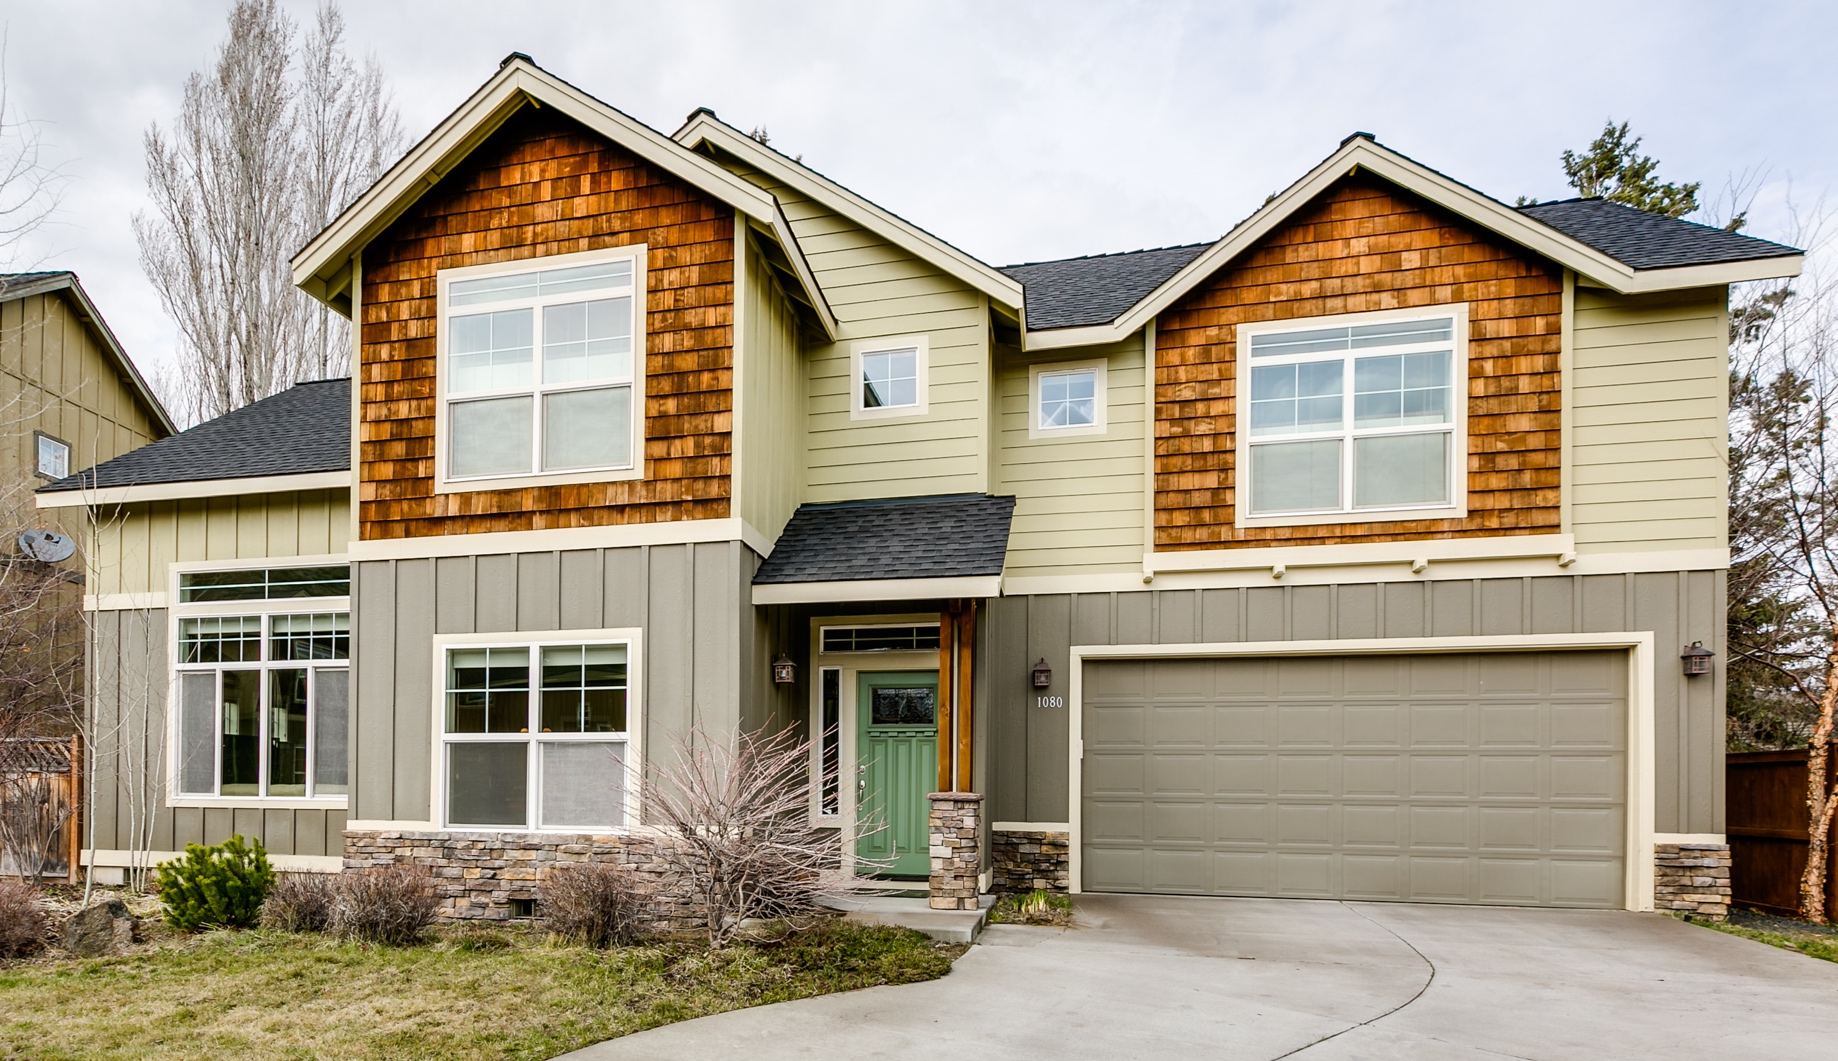 Sold!1080 NE Parkview Ct. Bend OR 97701 - $370,000This great home at the base of Pilot Butte went Pending after a week on the market. Closed in 41 days on the Market!